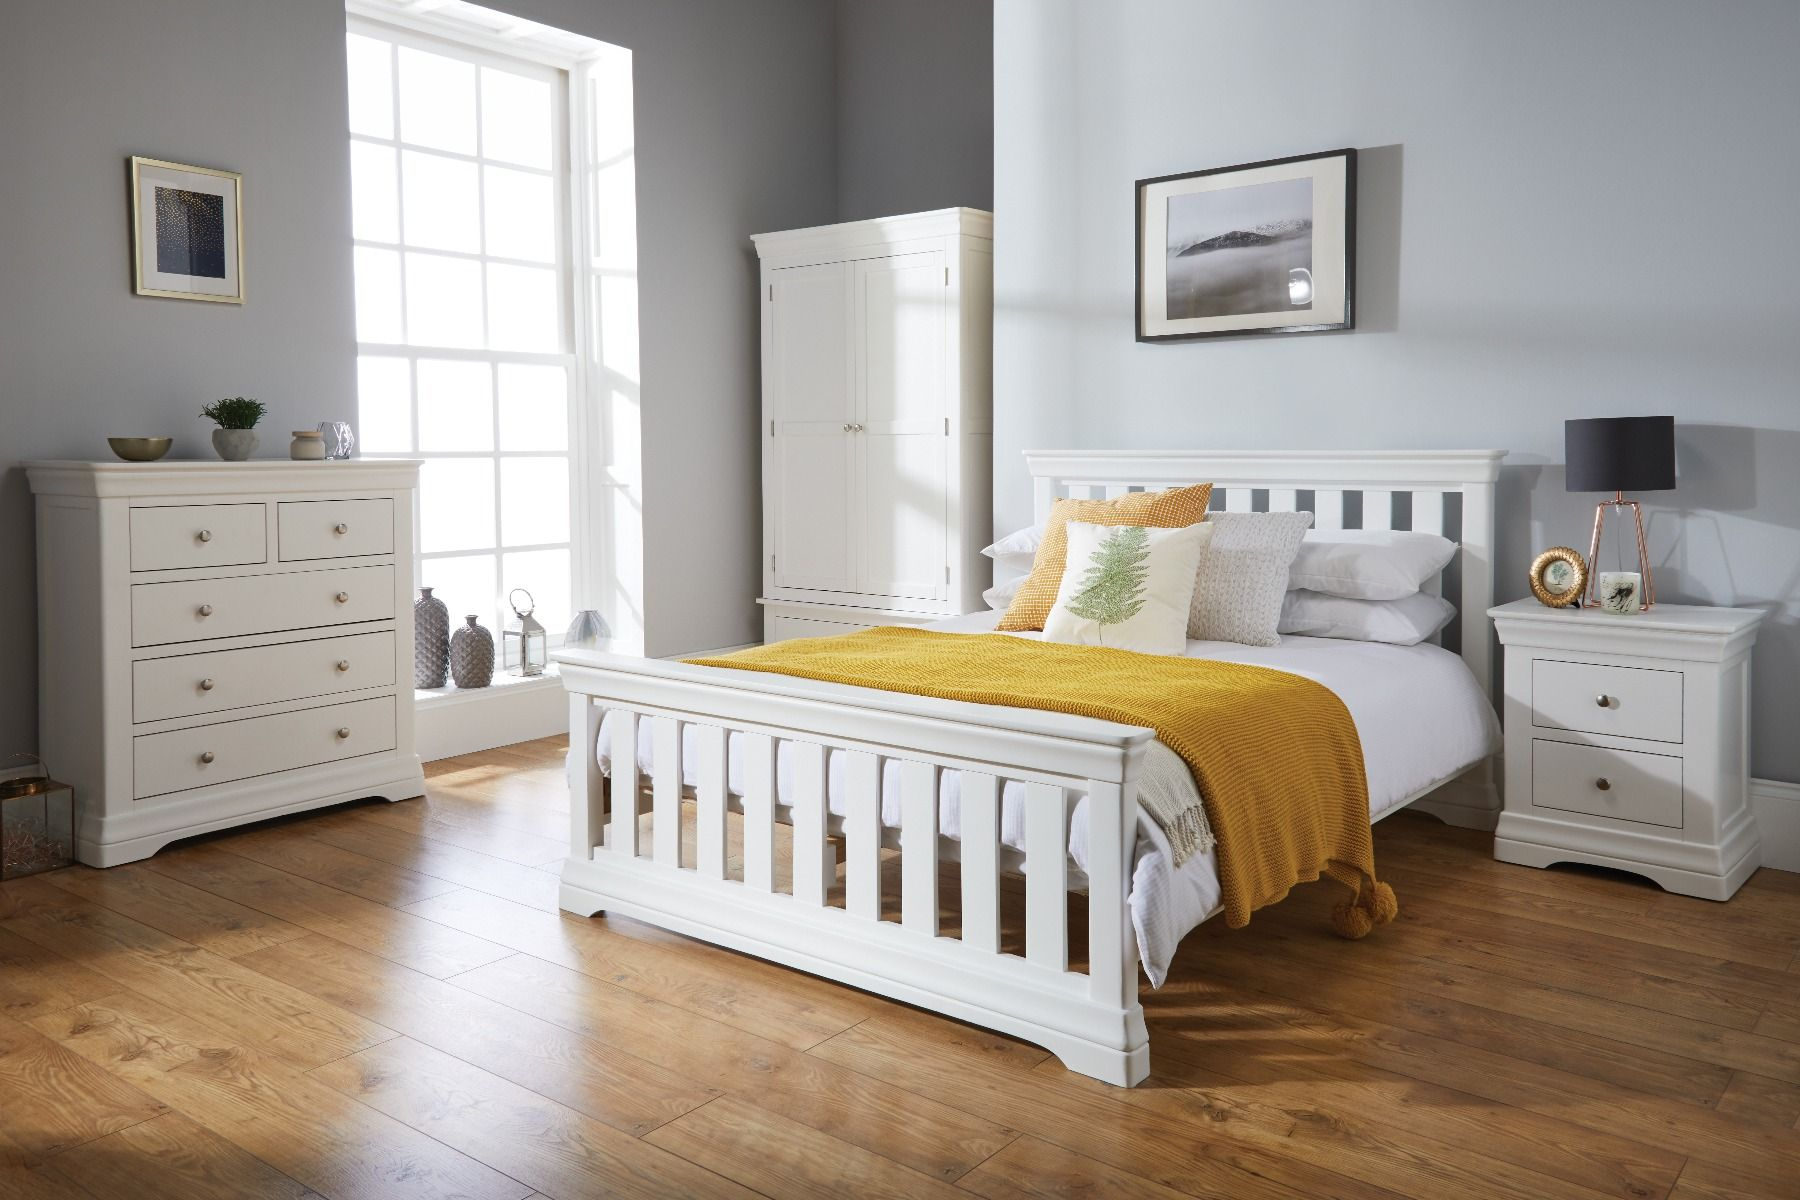 Toulouse White Painted 6 foot 6 inches Slatted Double Bed - AUTUMN SALE